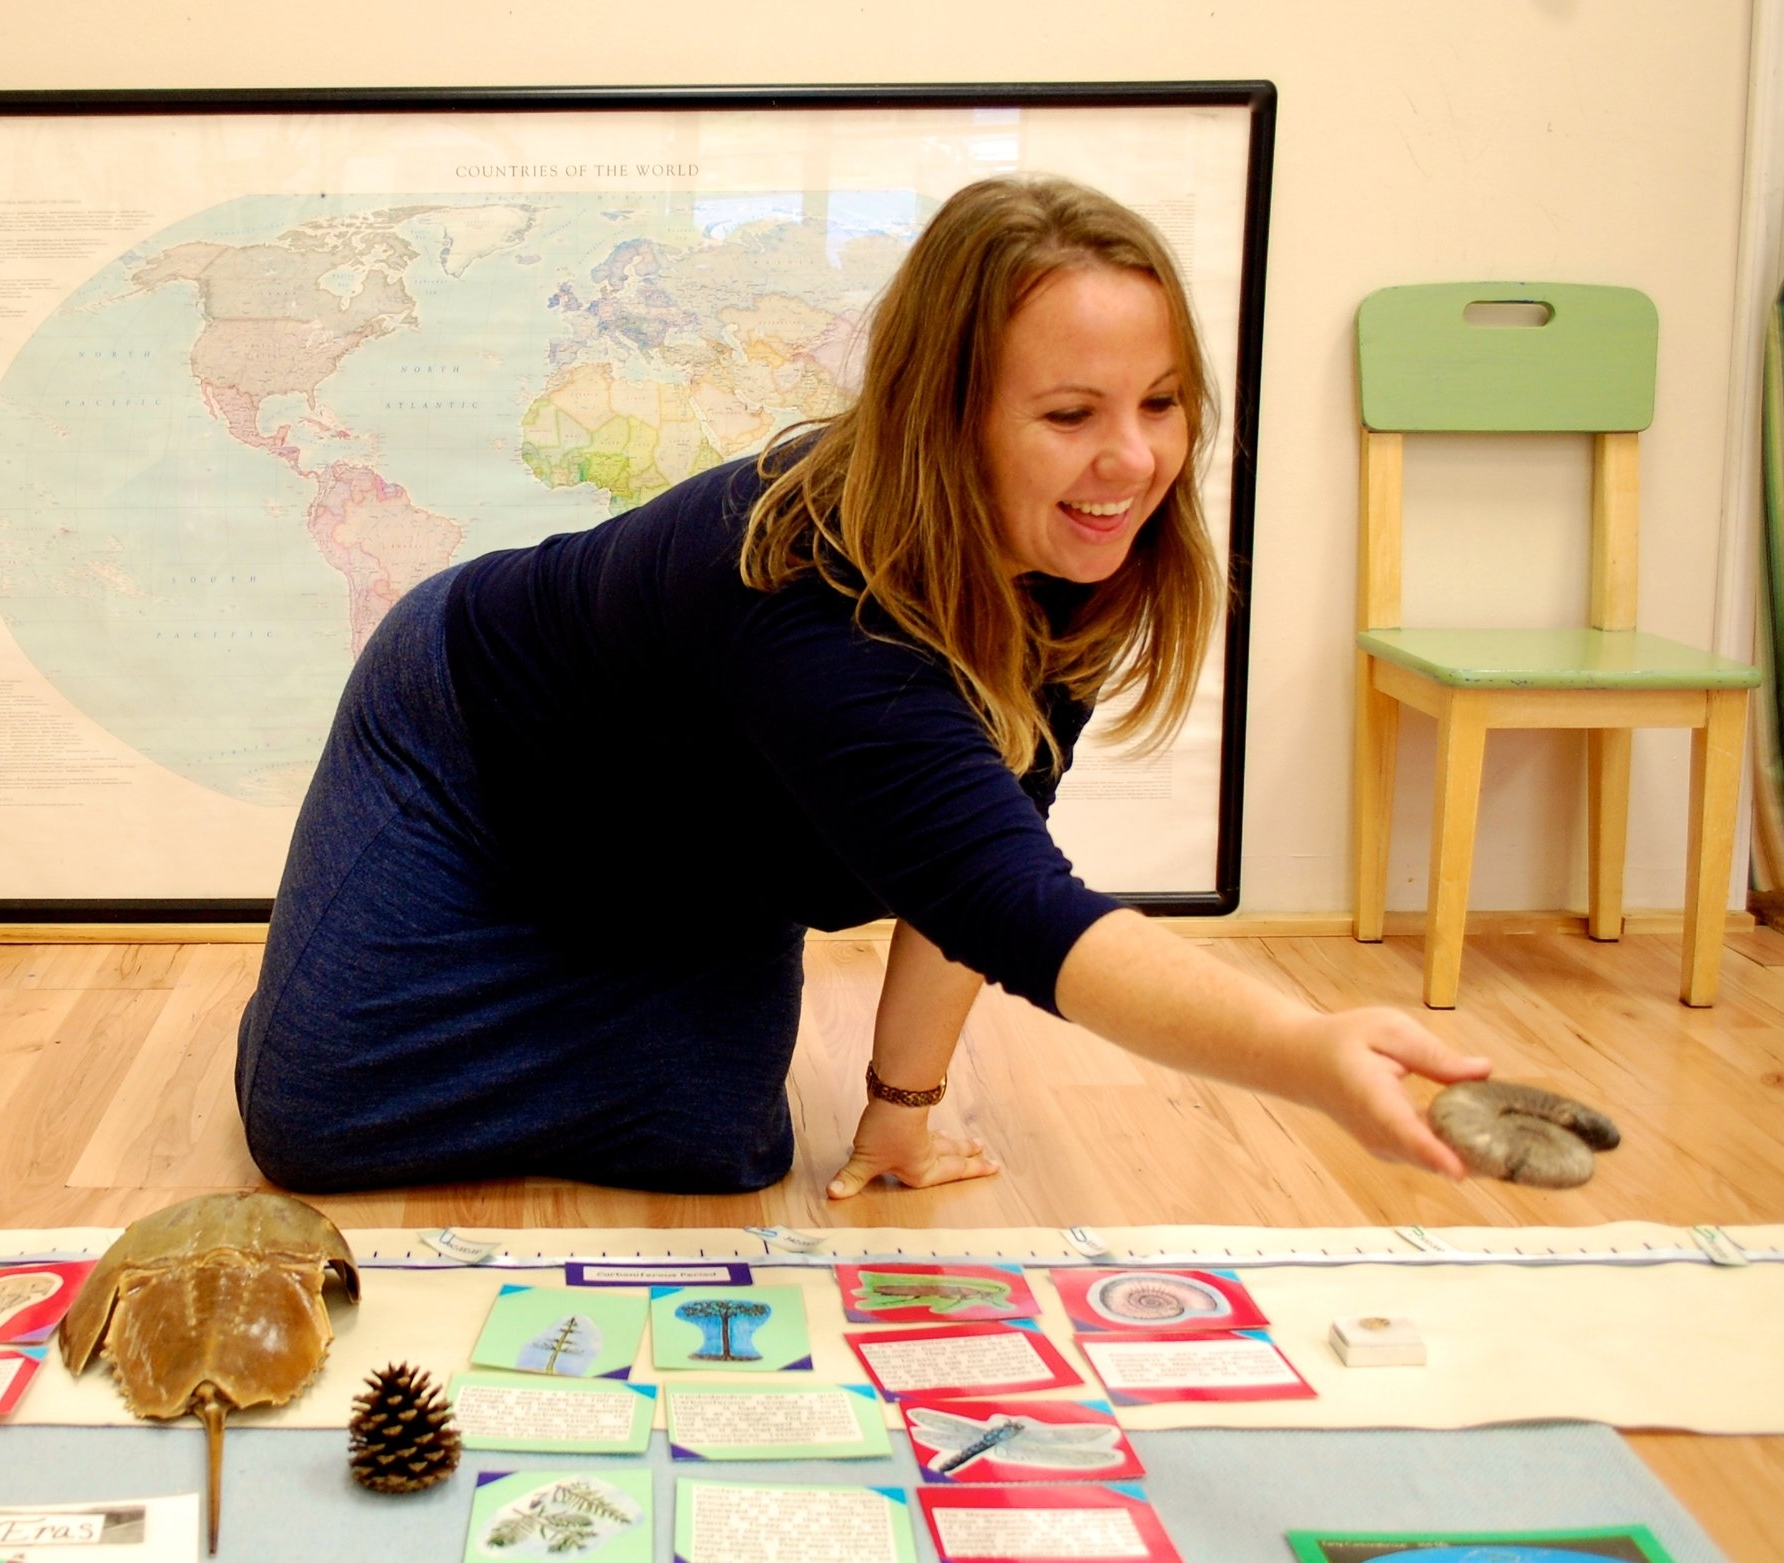 Nichole Rebich - Nicole is a certified and practicing Montessori teacher and advocate for educational systems that teach the whole child. She has been working with elementary aged children in the NRV for over twelve years- working as a guide in nature, visual arts, and culinary programs. Nicole is committed to implementing educational curricula that encourages mindfulness, advocacy, and diversity. She enjoys guiding children in their development of art skills and techniques, as well as use of assorted art media to express themselves emotionally, spiritually, and academically. Nicole has an MS in Curriculum and Instruction from Radford University and an Elementary credential from the Institute for Advanced Montessori Studies through the American Montessori Society.